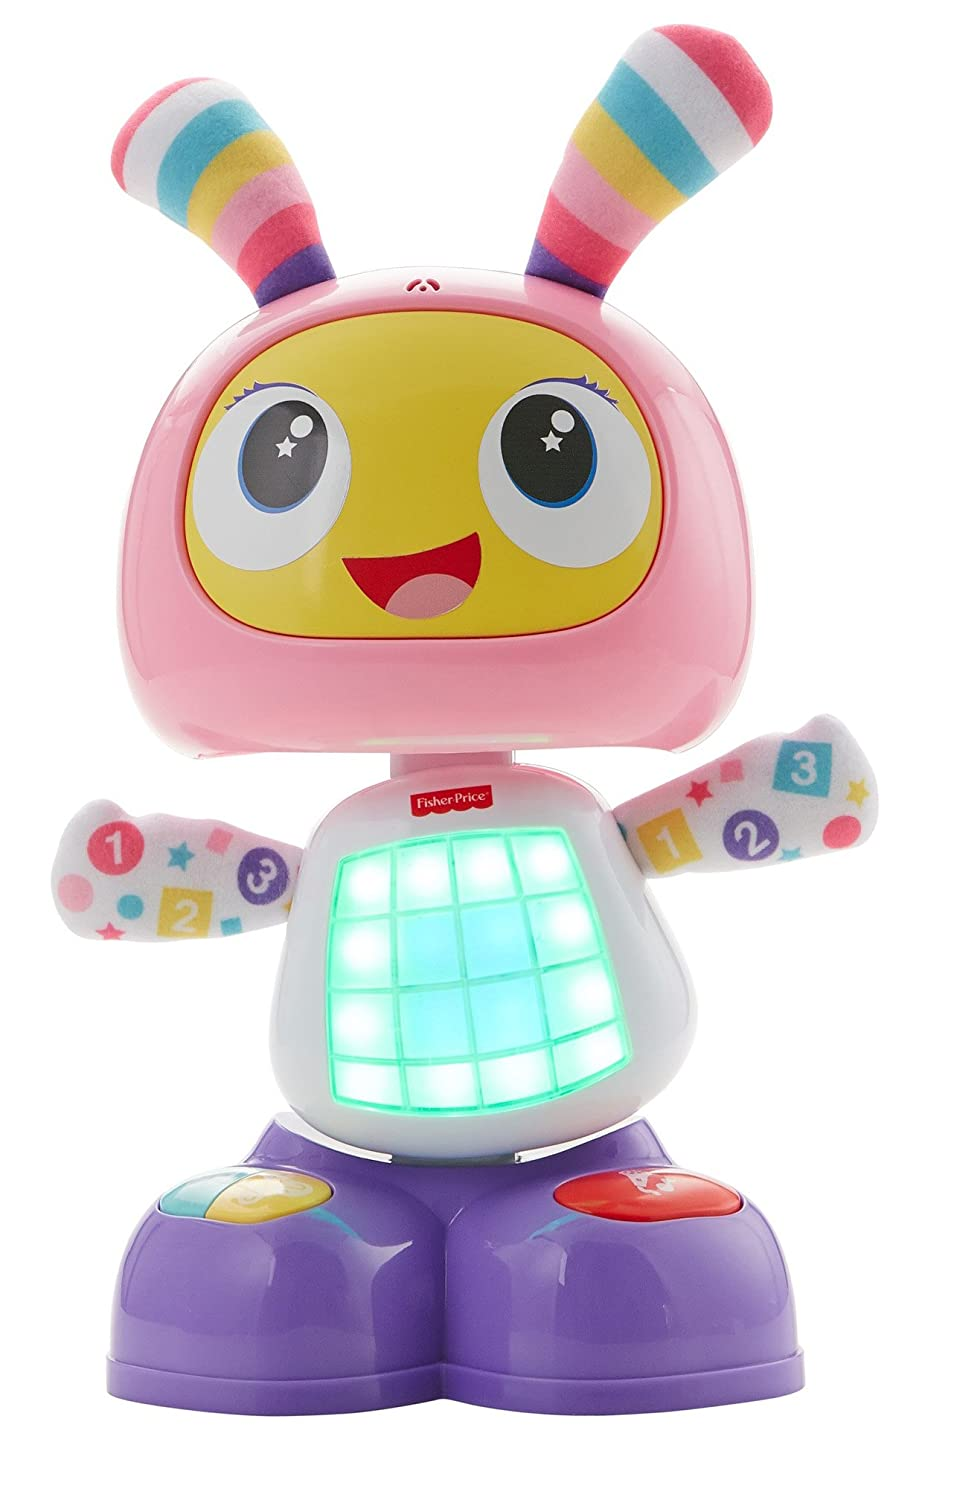 Baby Activity Toys : Baby activity toy fisher price robot beatbelle infant